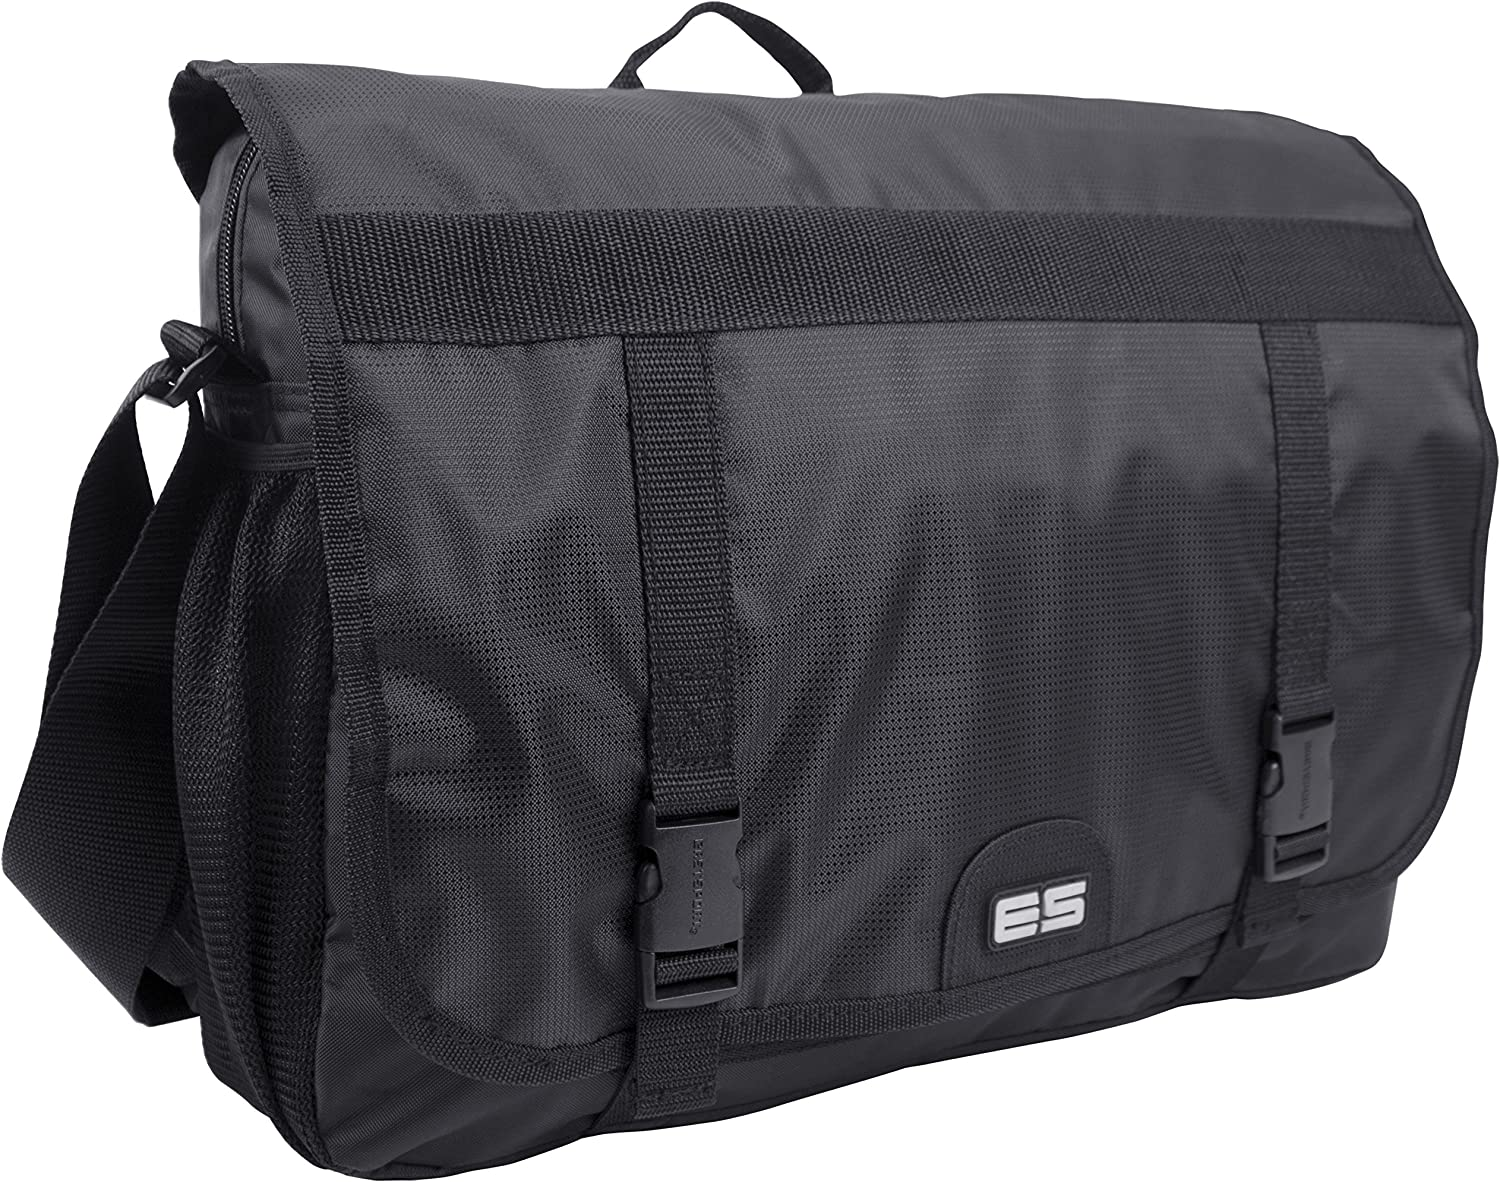 Eastsport Double Buckle Laptop Messenger, Black, One Size